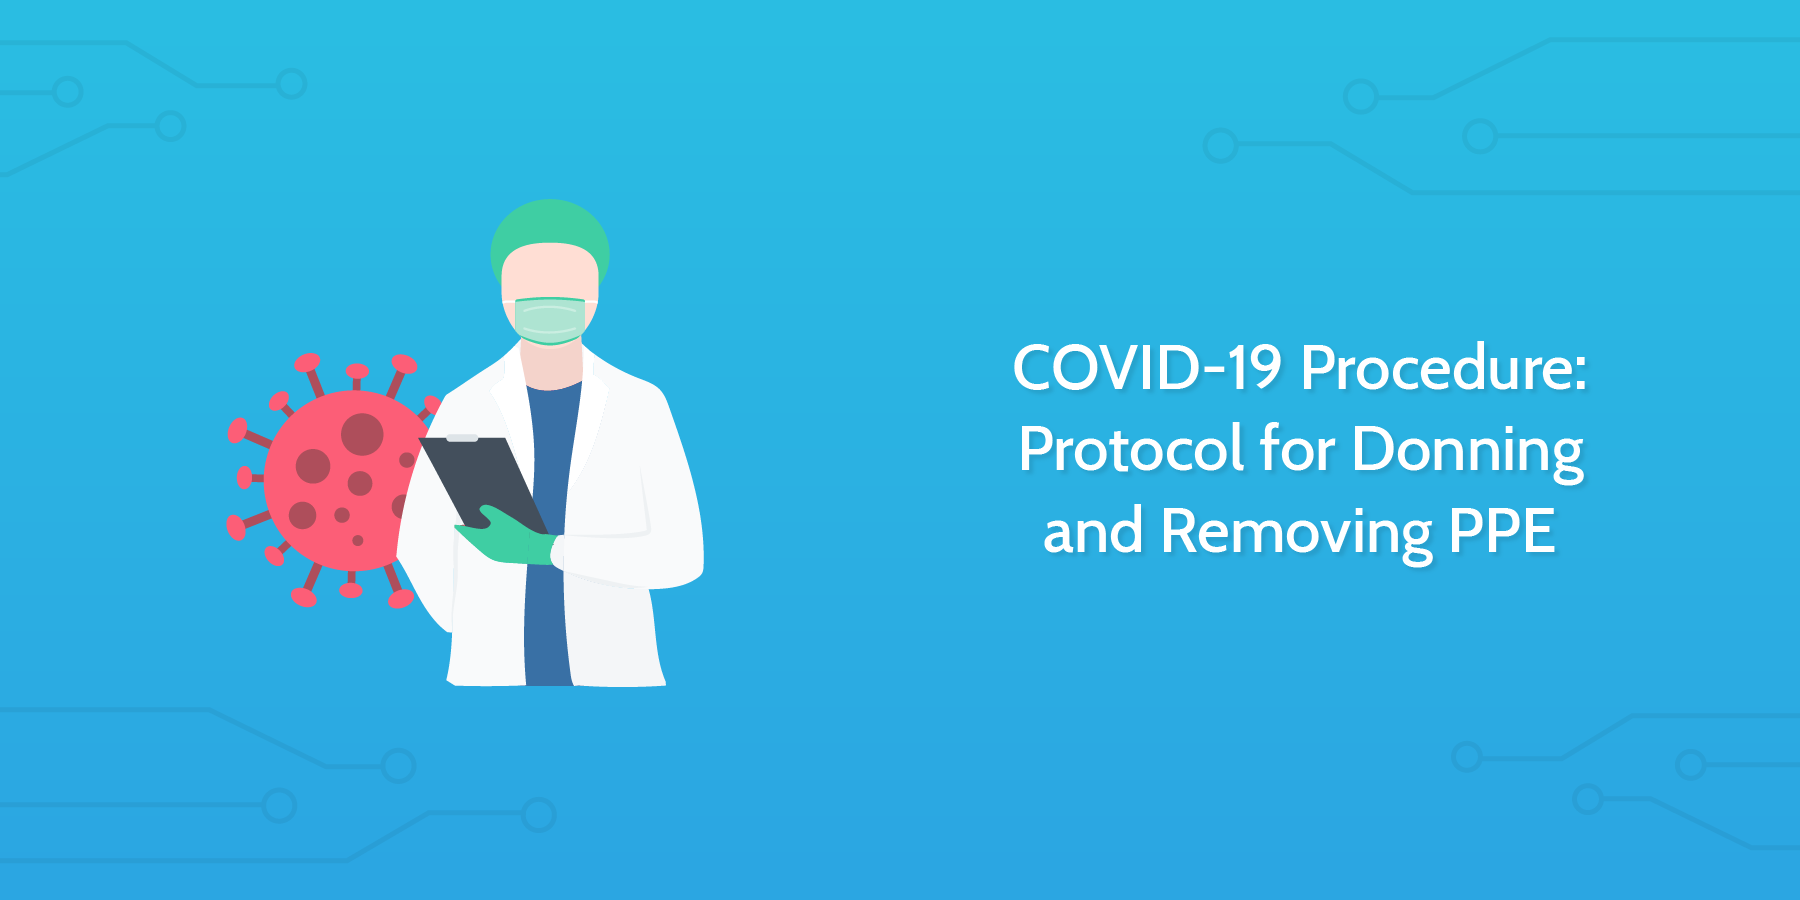 COVID-19 Procedure: Protocol for Donning and Removing PPE